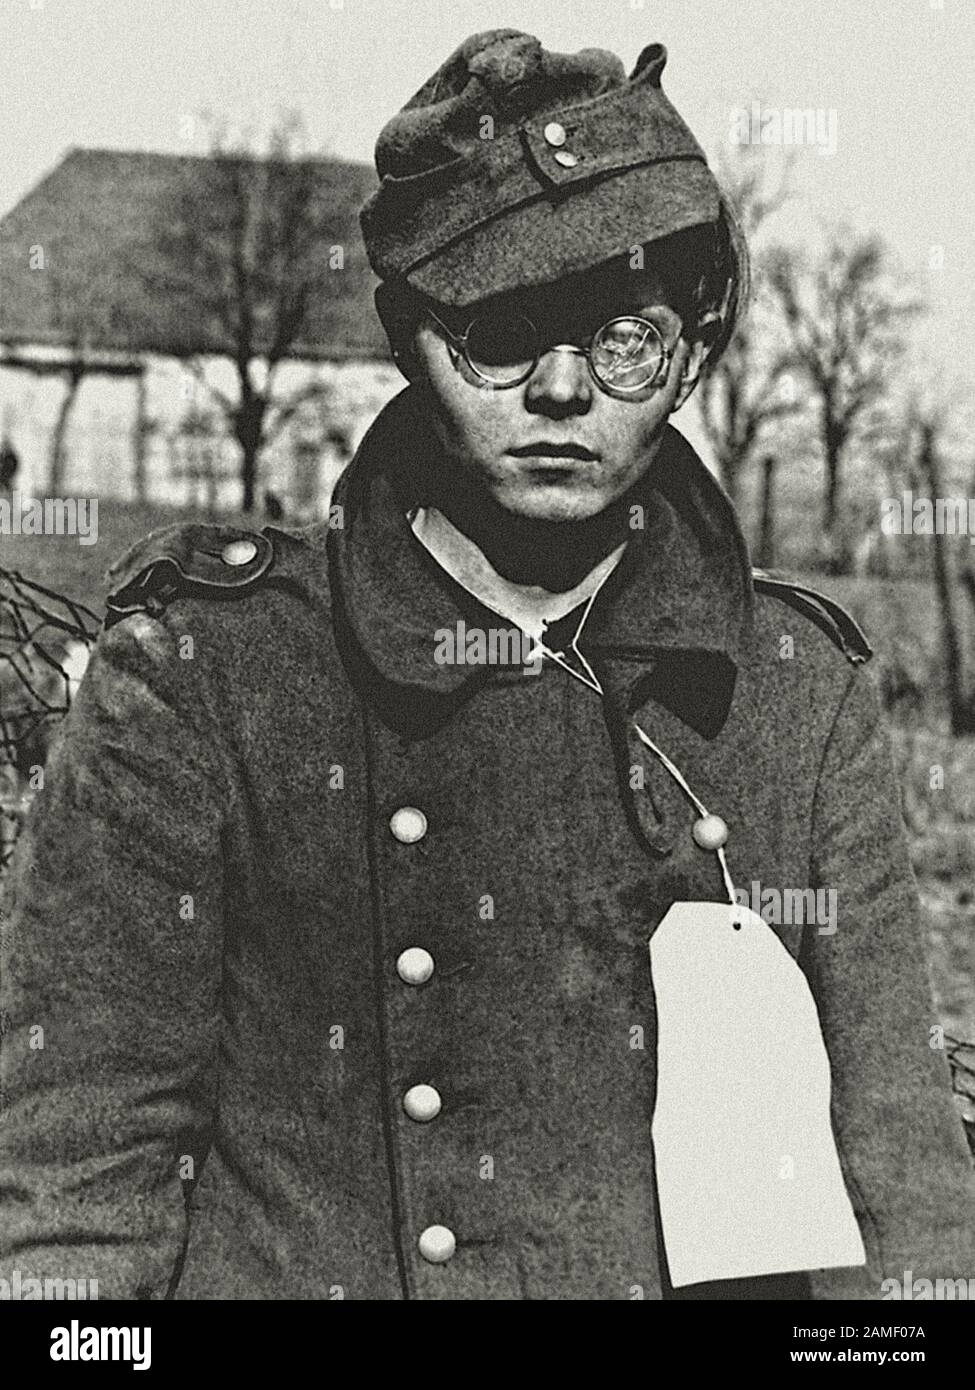 A 19-year-old German soldier captured by allies from the 7th US Army in the French border town of Forbach, Lorraine. France. March 1945 Stock Photo